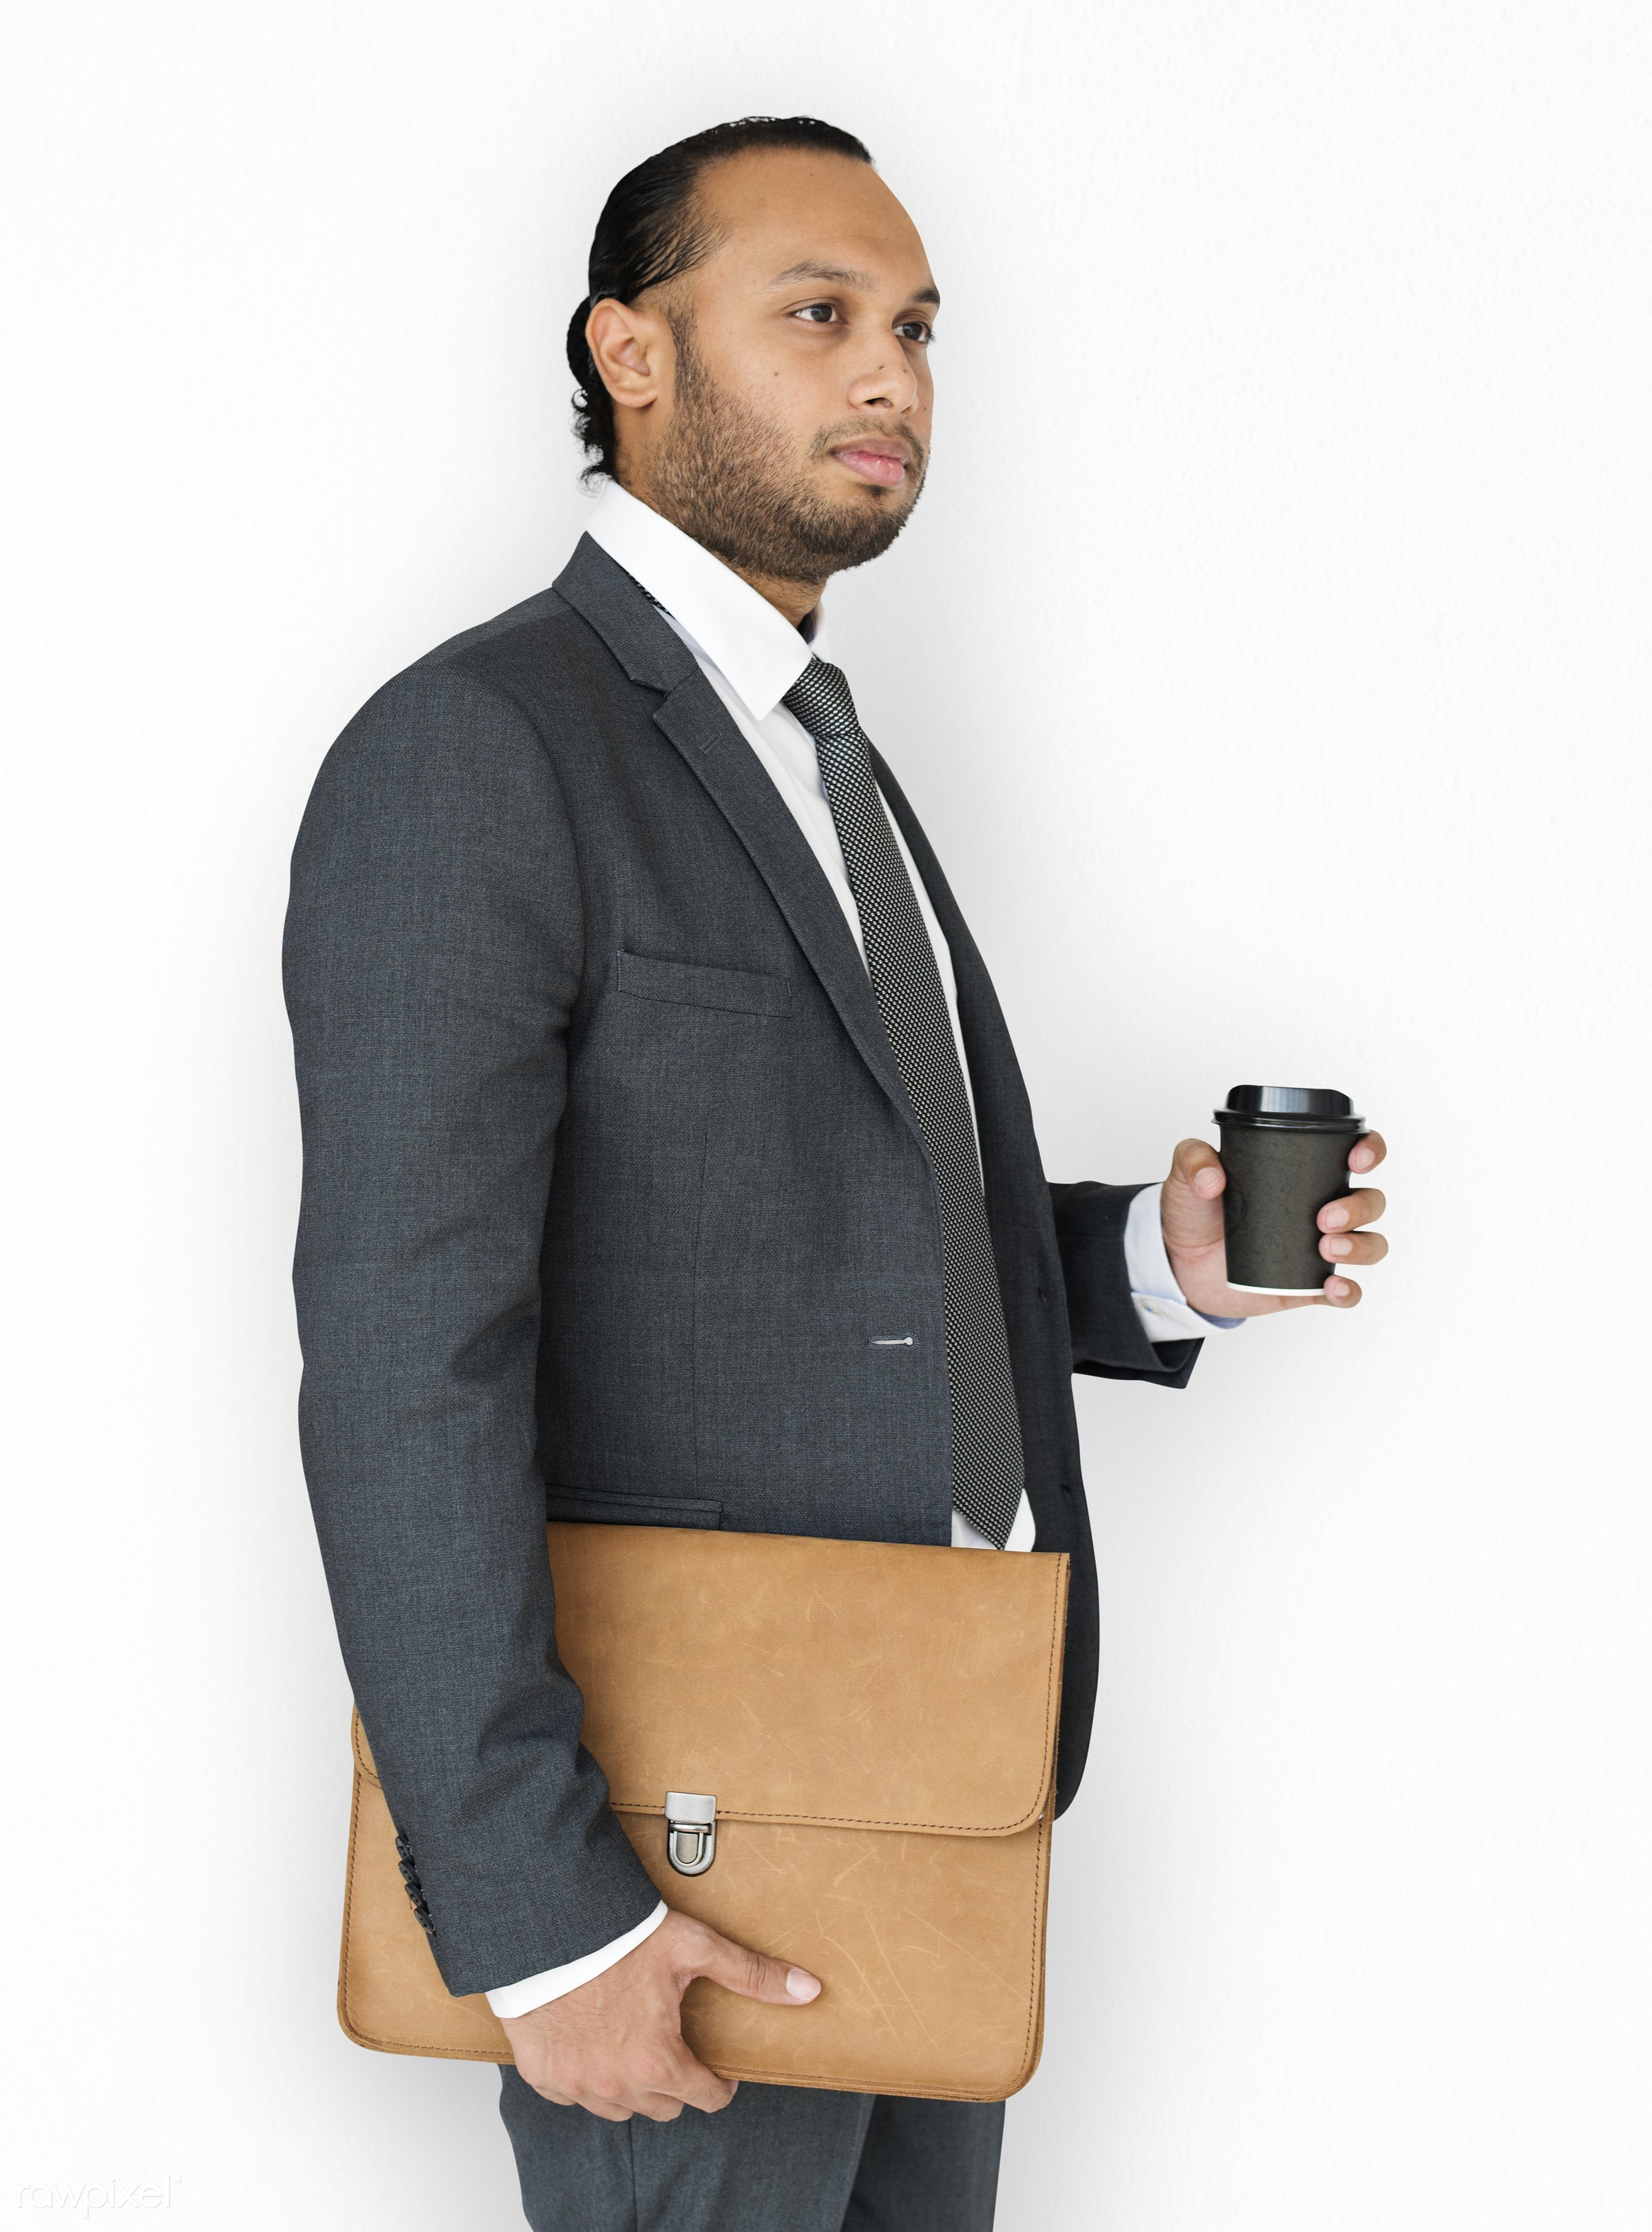 studio, expression, person, messenger bag, business wear, isolated on white, side view, people, business, asian, side,...